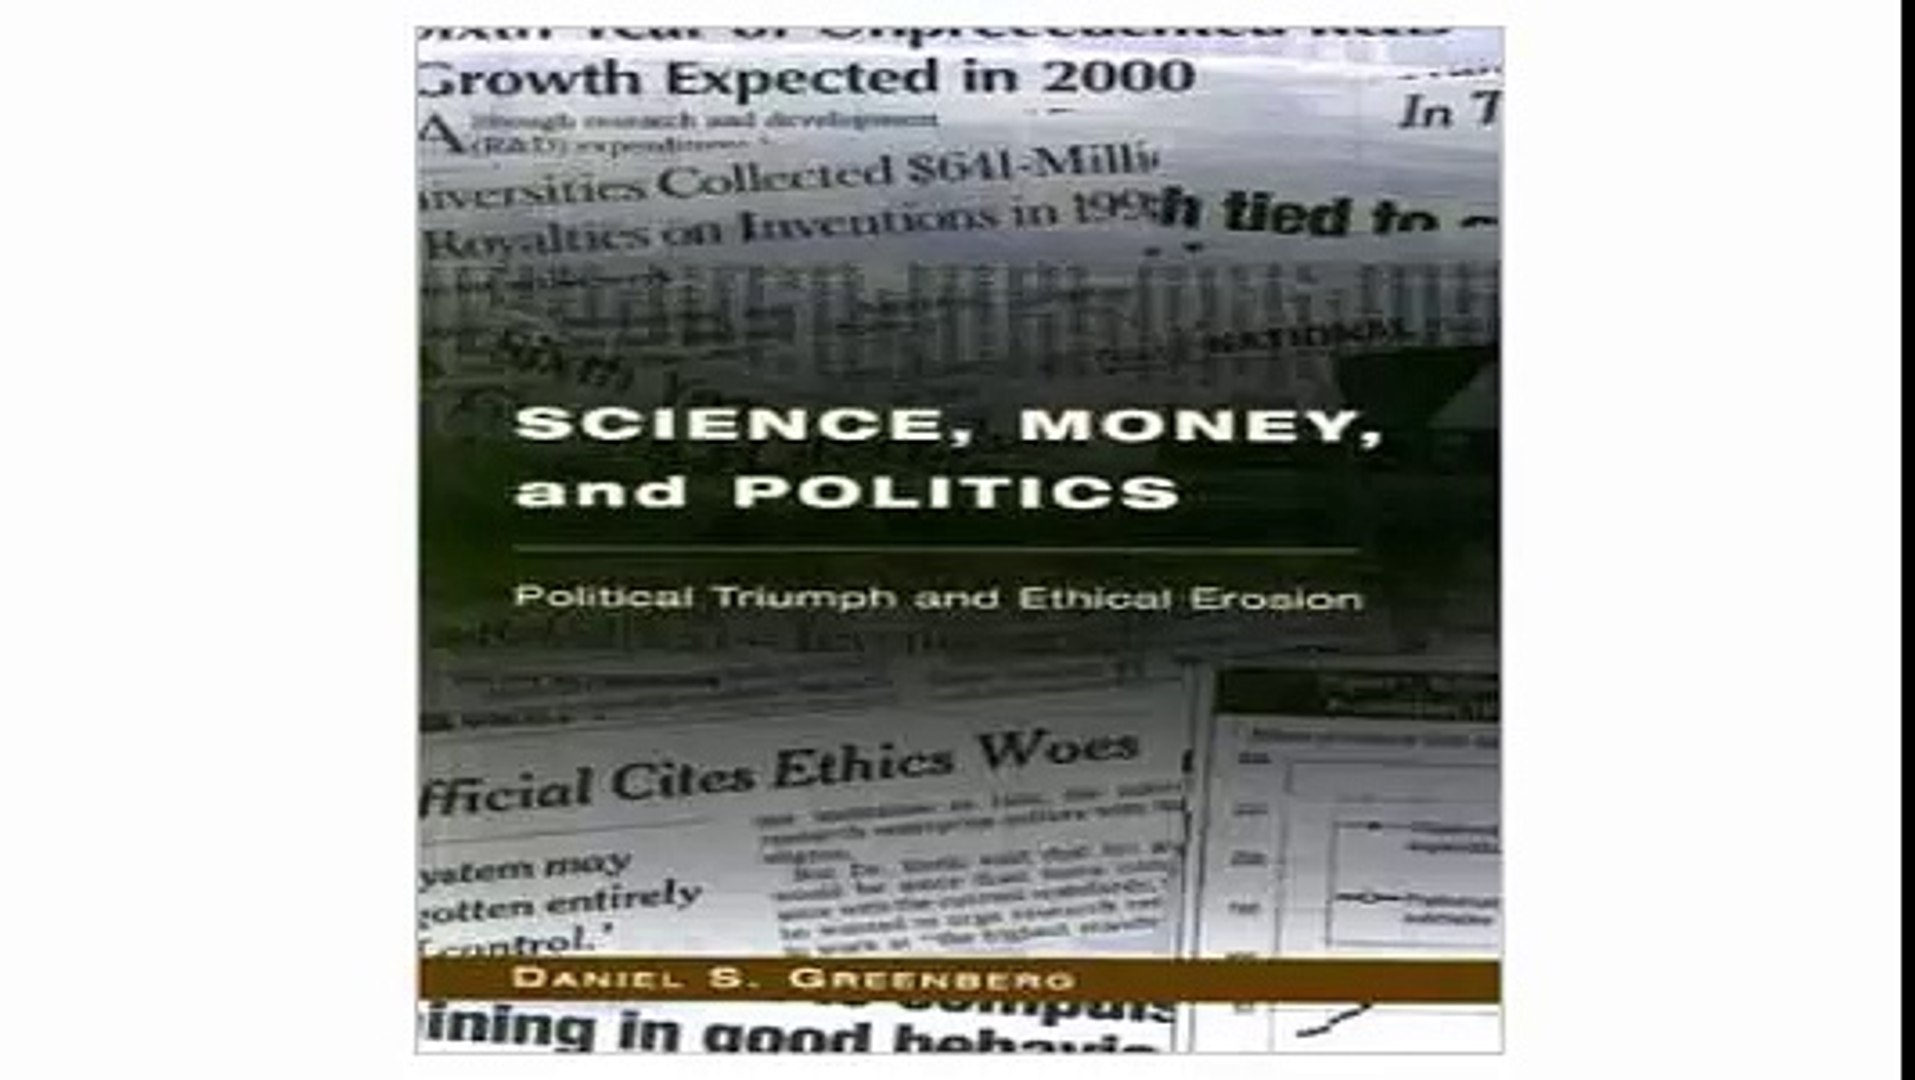 Science, Money, and Politics Political Triumph and Ethical Erosion